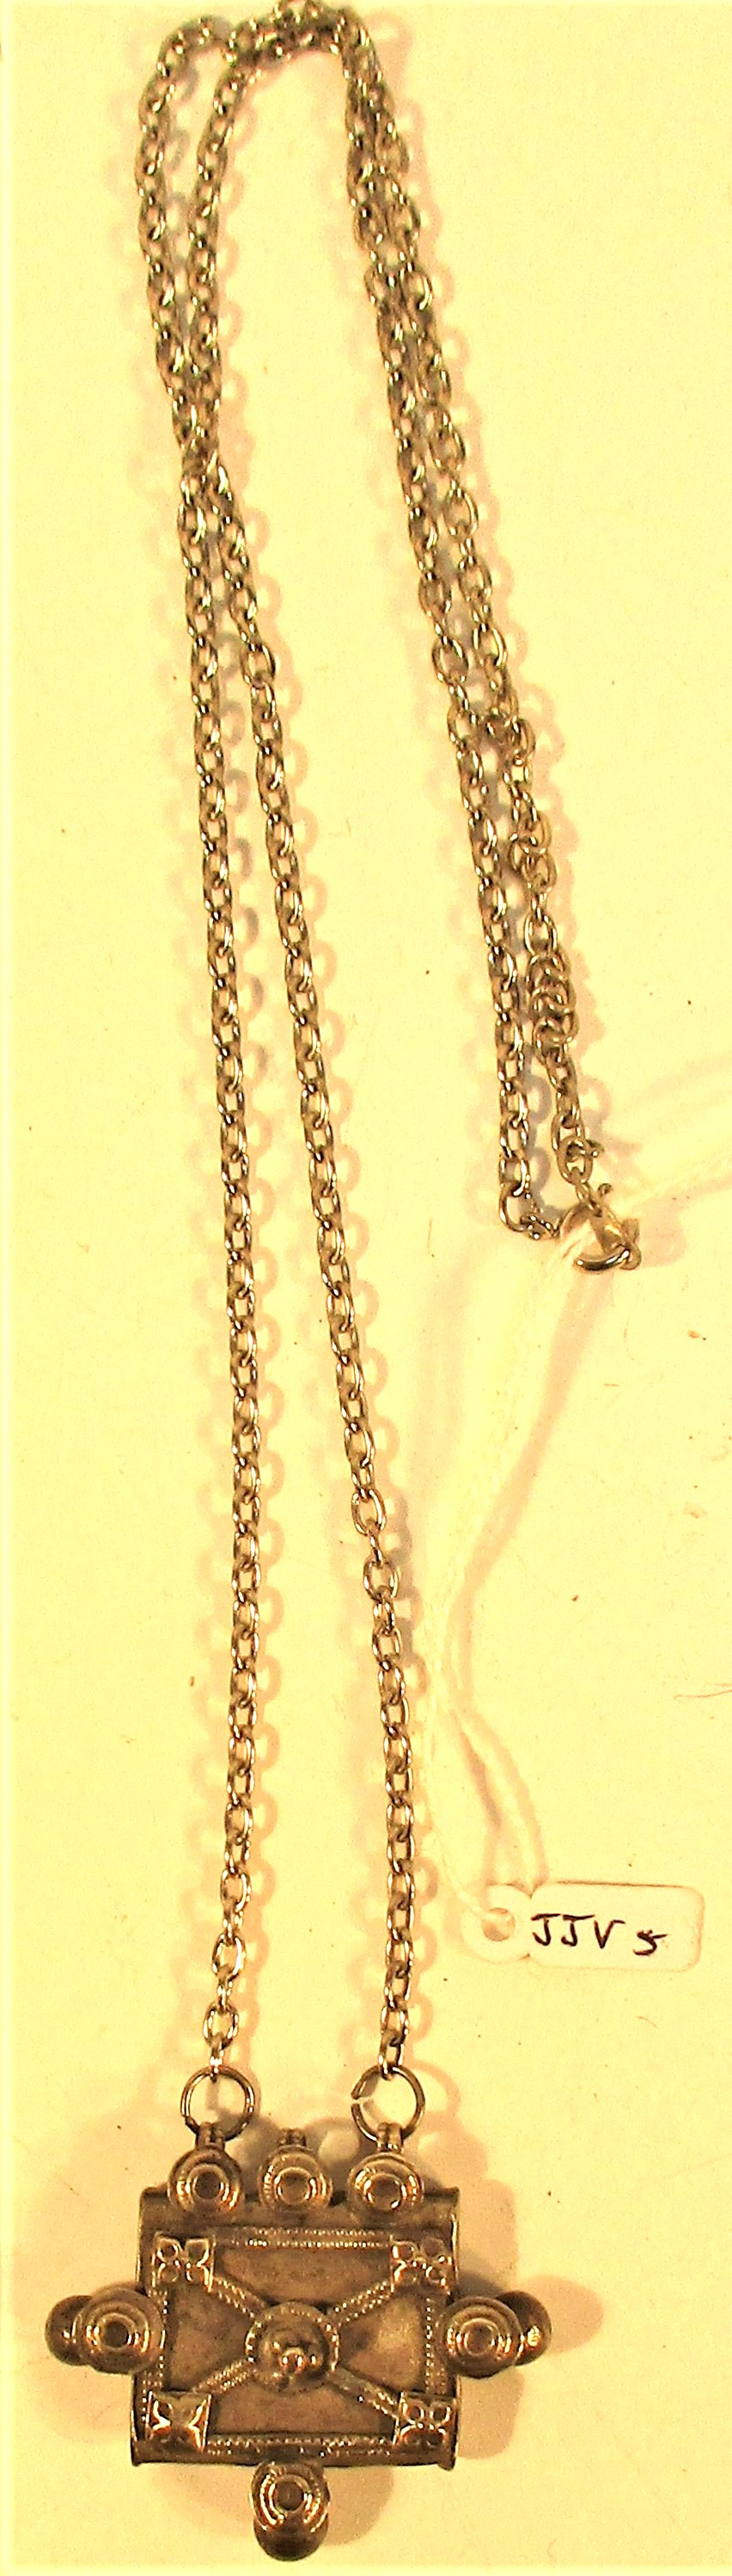 A pendant of an antique white metal amulet from Afghanistan on a chain. 32cm.